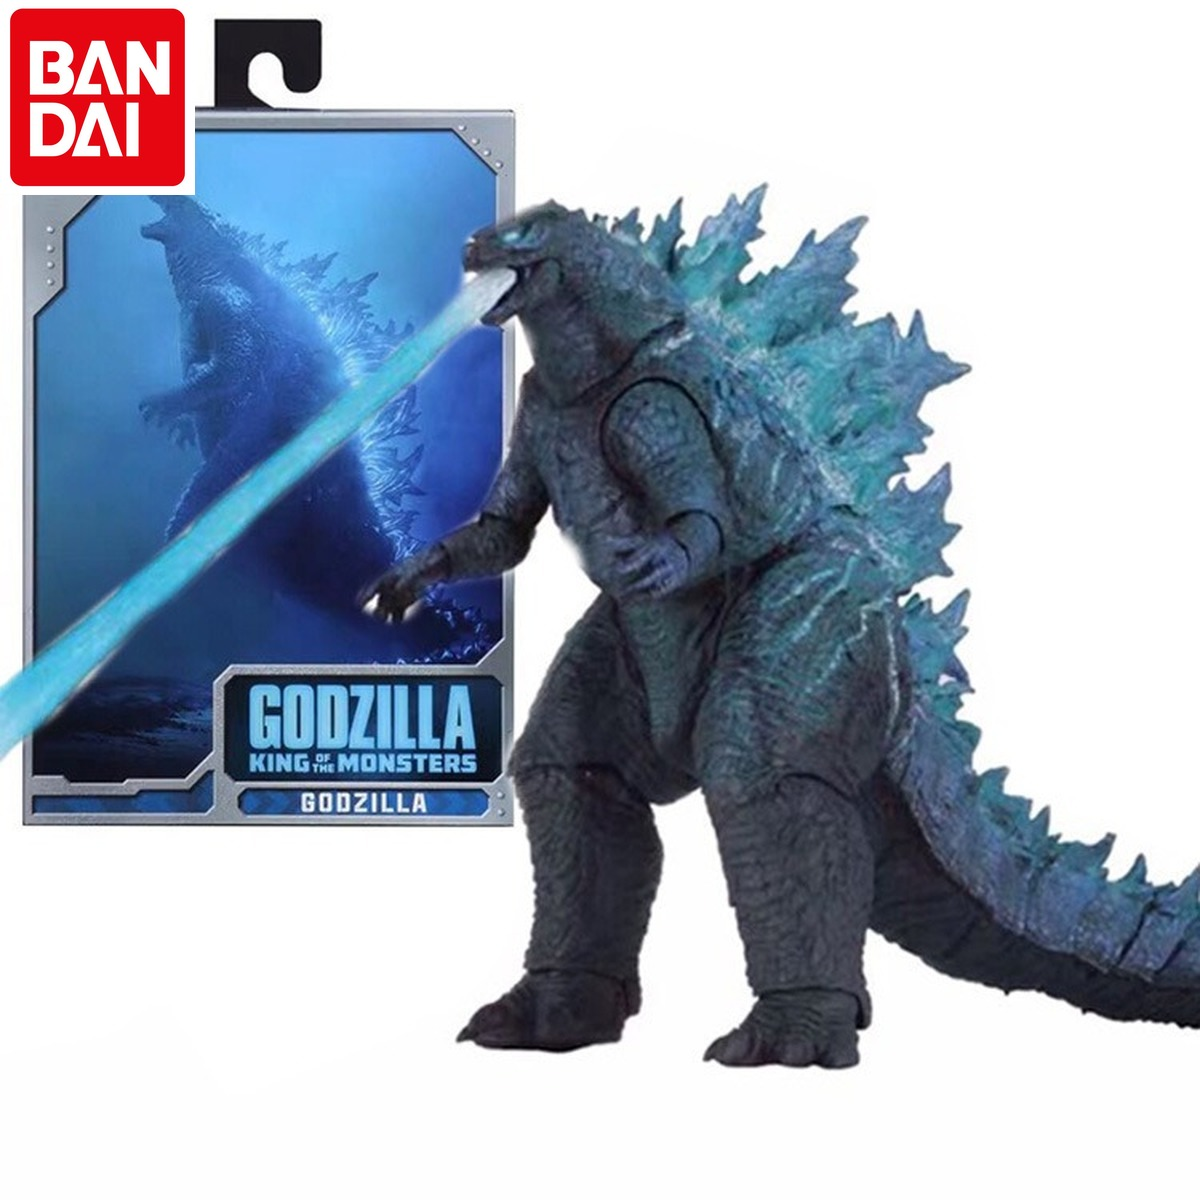 BANDAI Godzilla 2019 Movie Nuclear Power Injection Energy Version SHM Godzilla Monster Mobile Phone Model Hand To Do